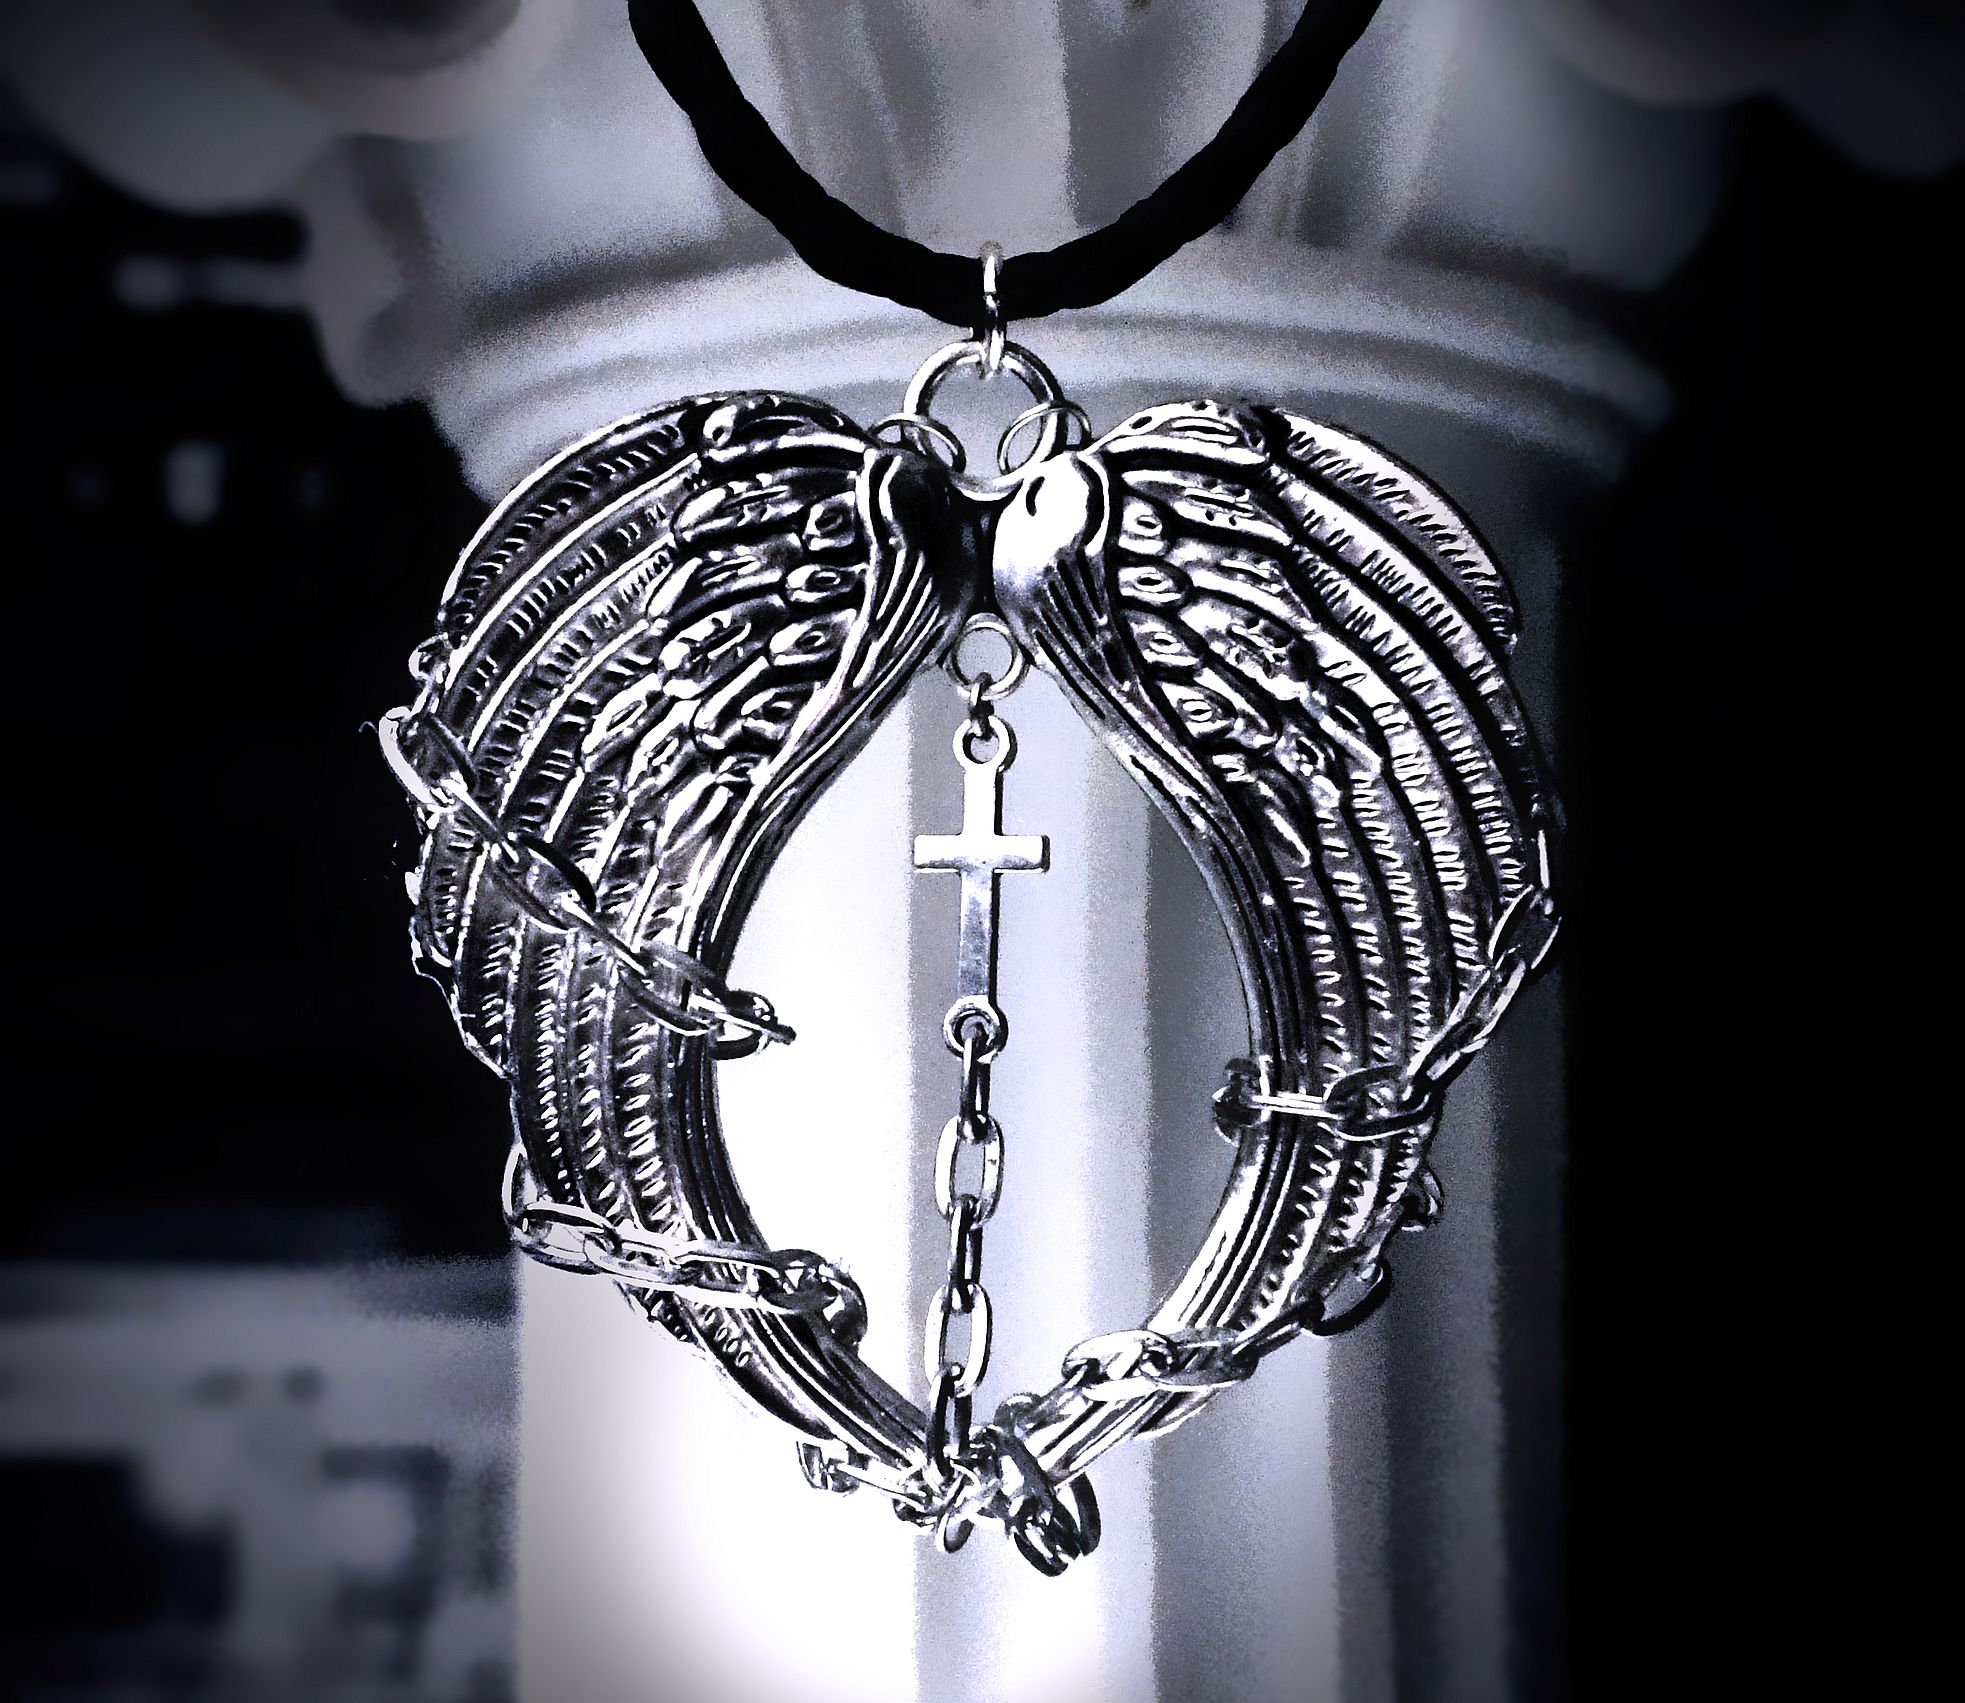 Angel demon satanic wings man jewelry gift anniversary